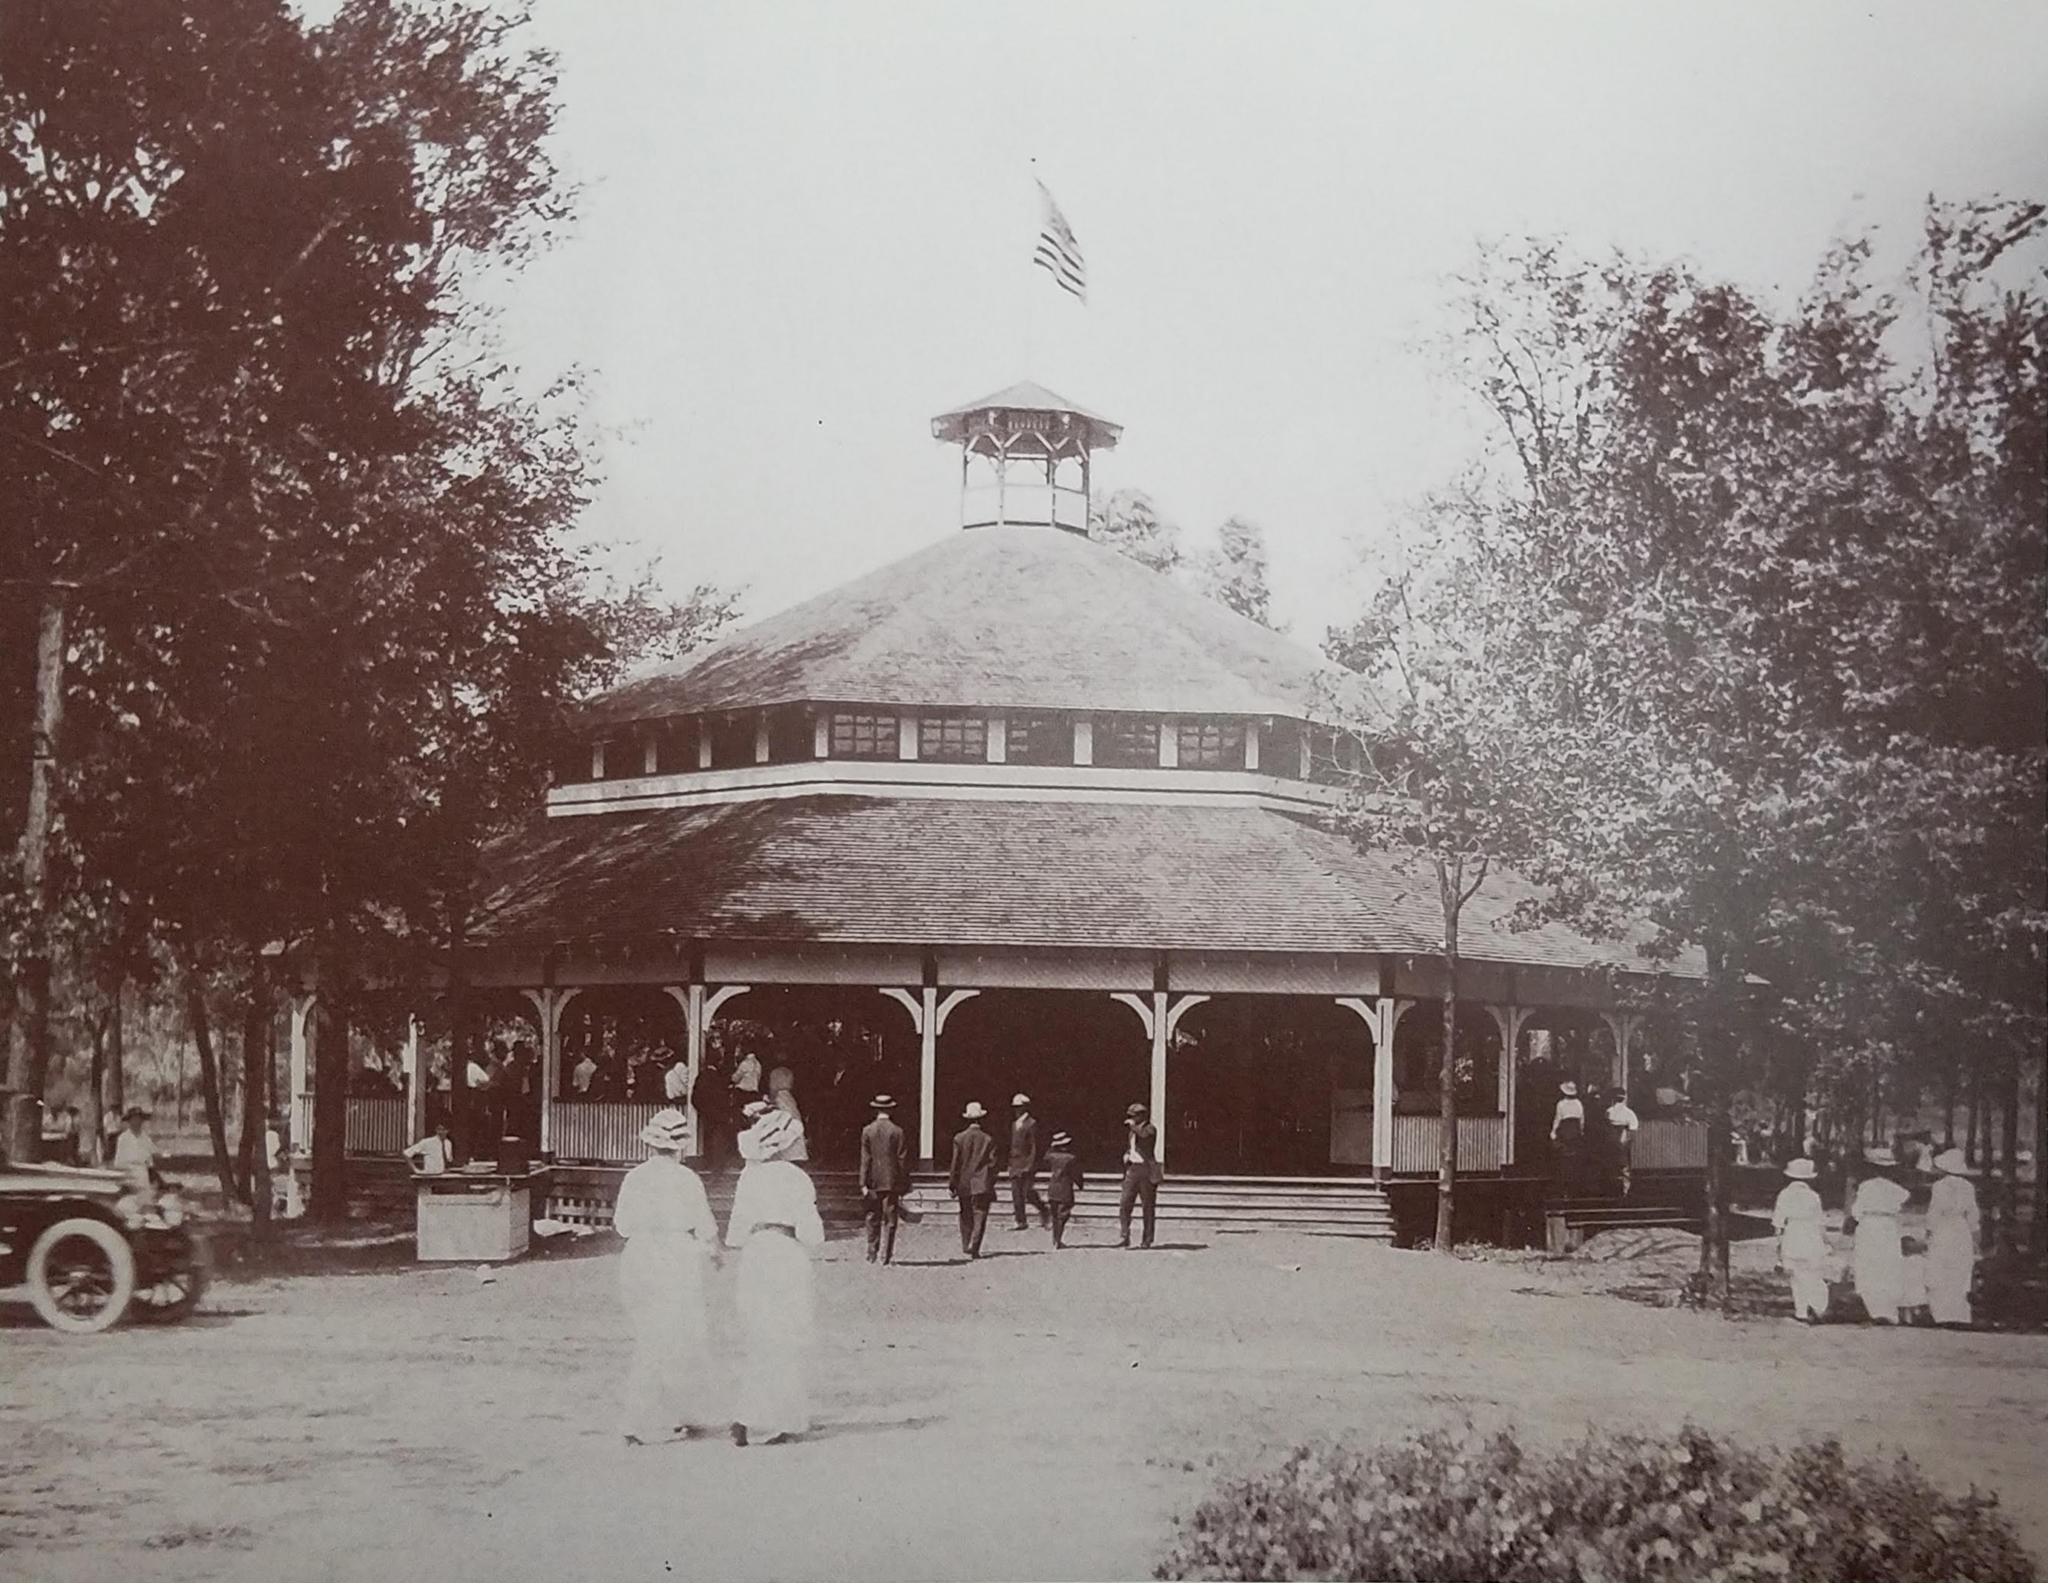 Walbridge Park Pavilion in 1900